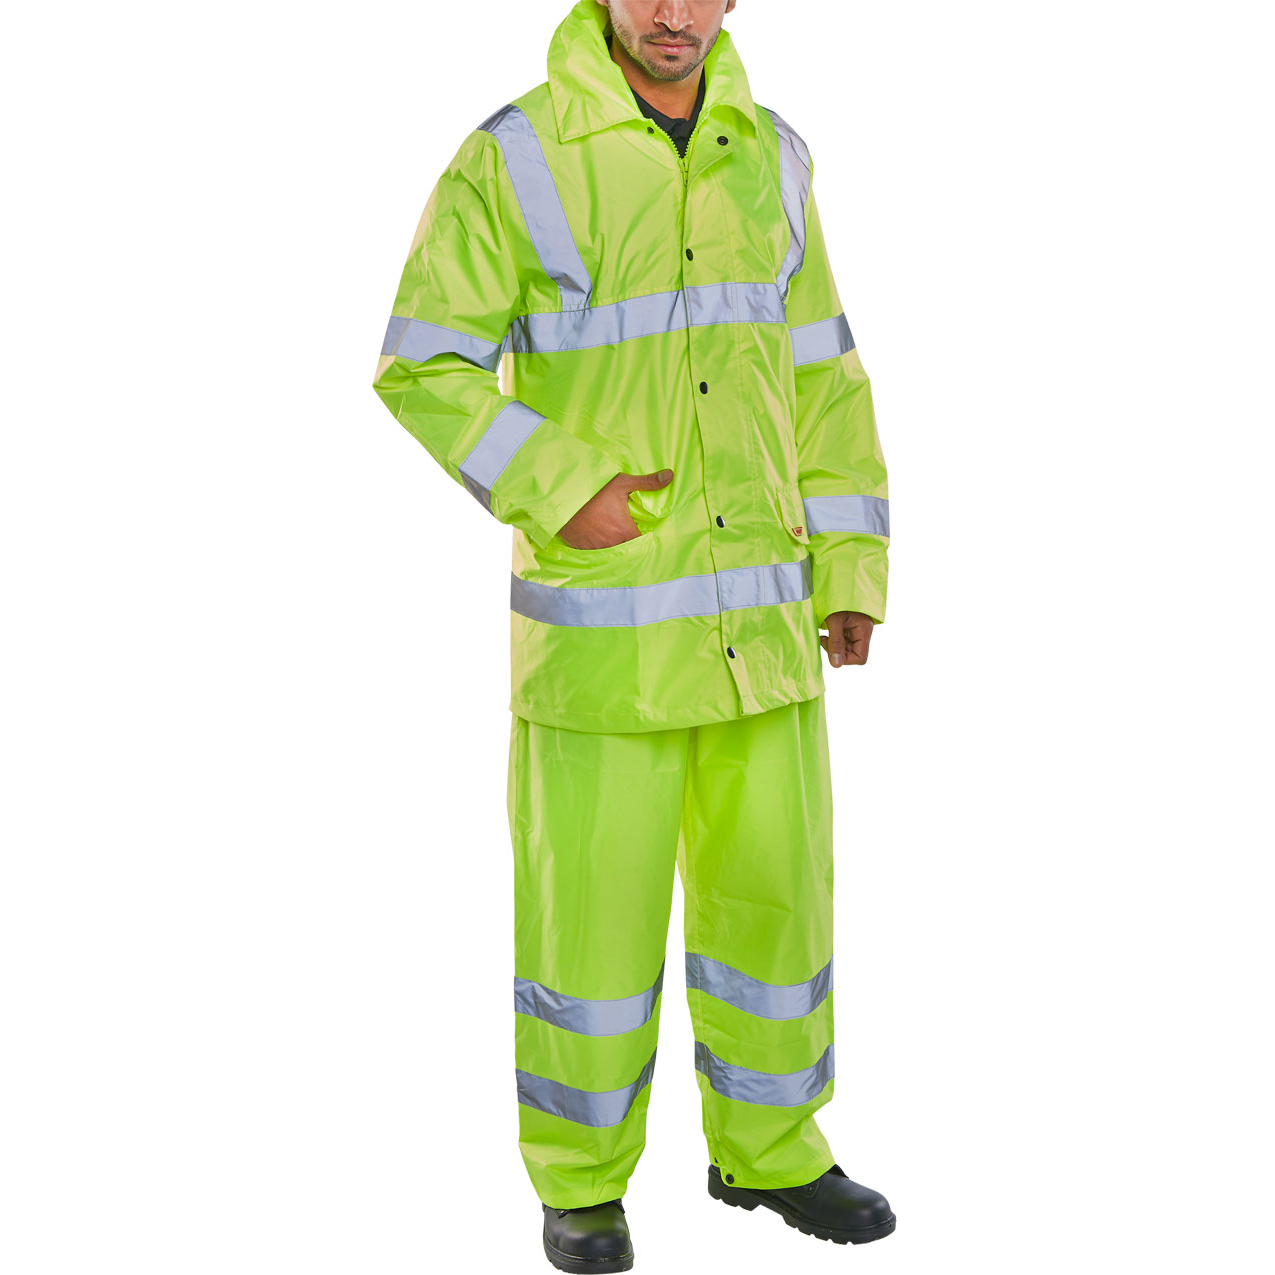 BSeen Hi-Vis L/Wt Suit Jkt/Trs EN ISO 20471 EN 343 Small Saturn Yellow Ref TS8SYS *Up to 3 Day Leadtime*